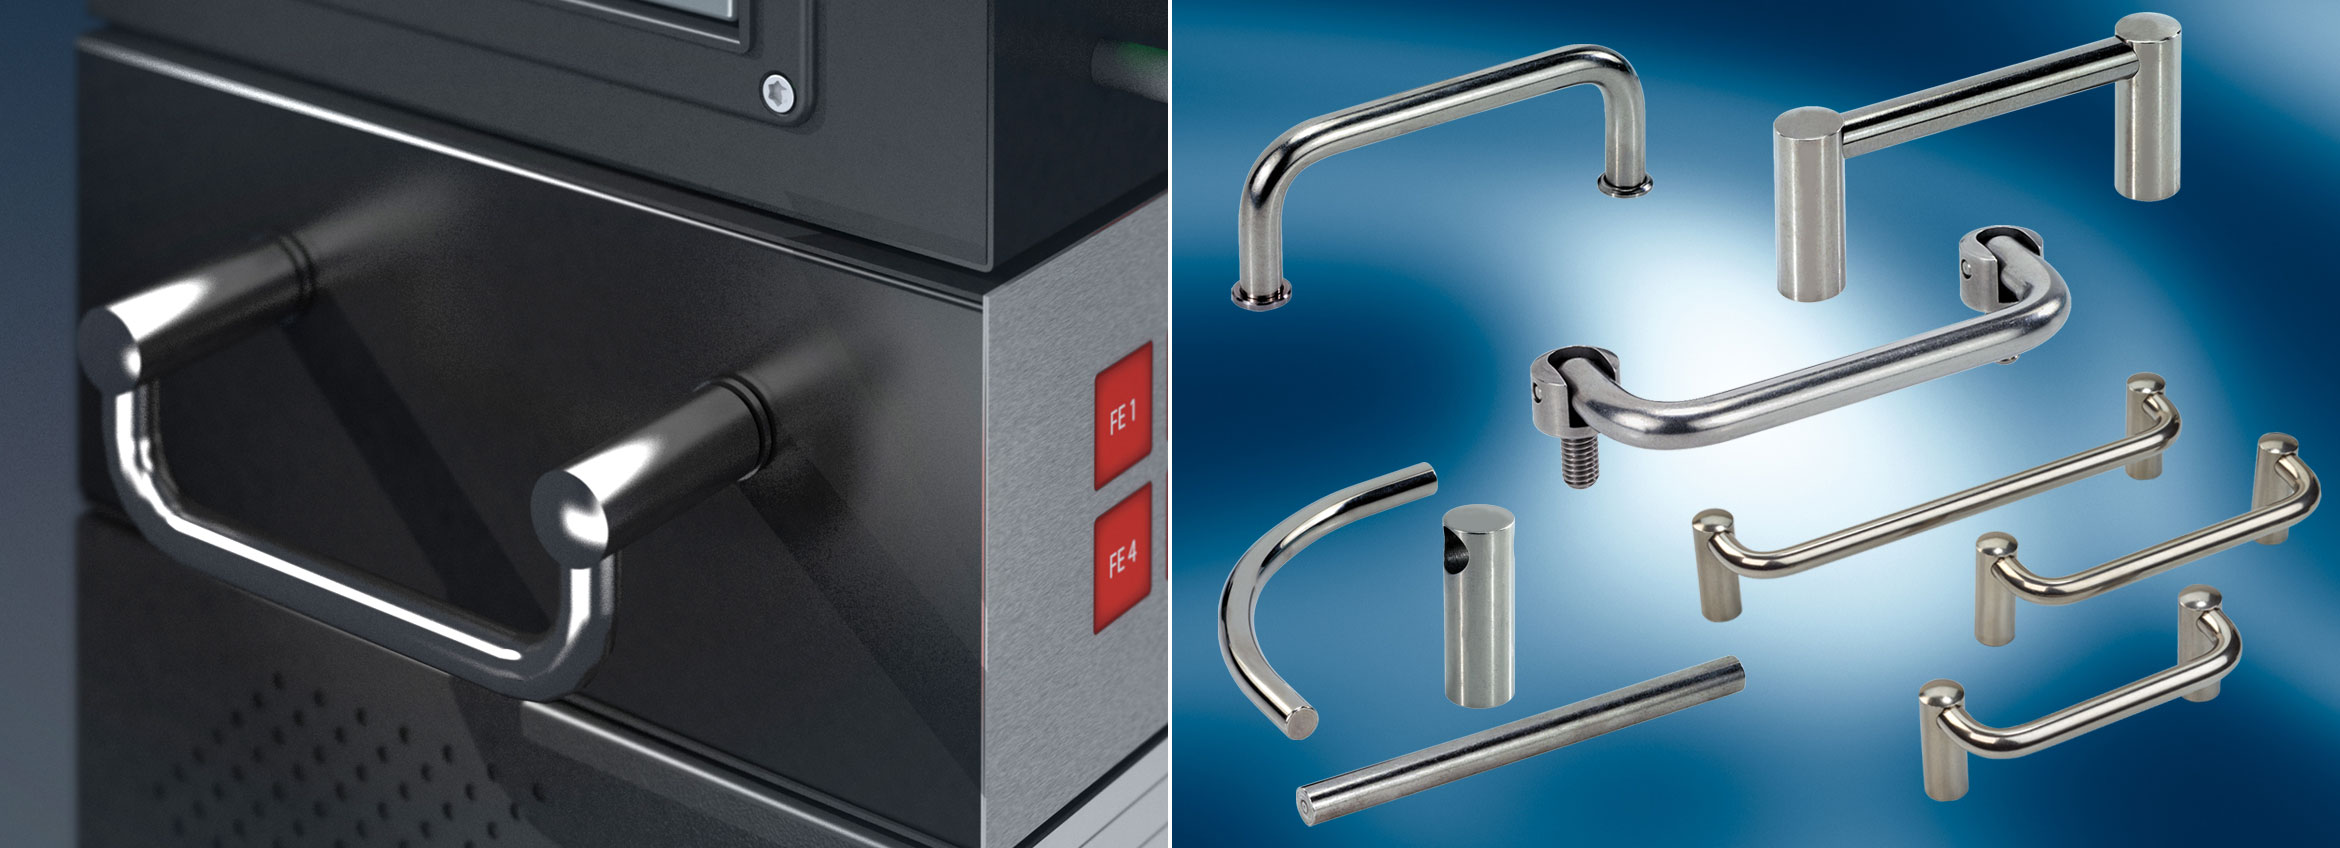 Examples of MENTOR's range of Stainless Steel Handles